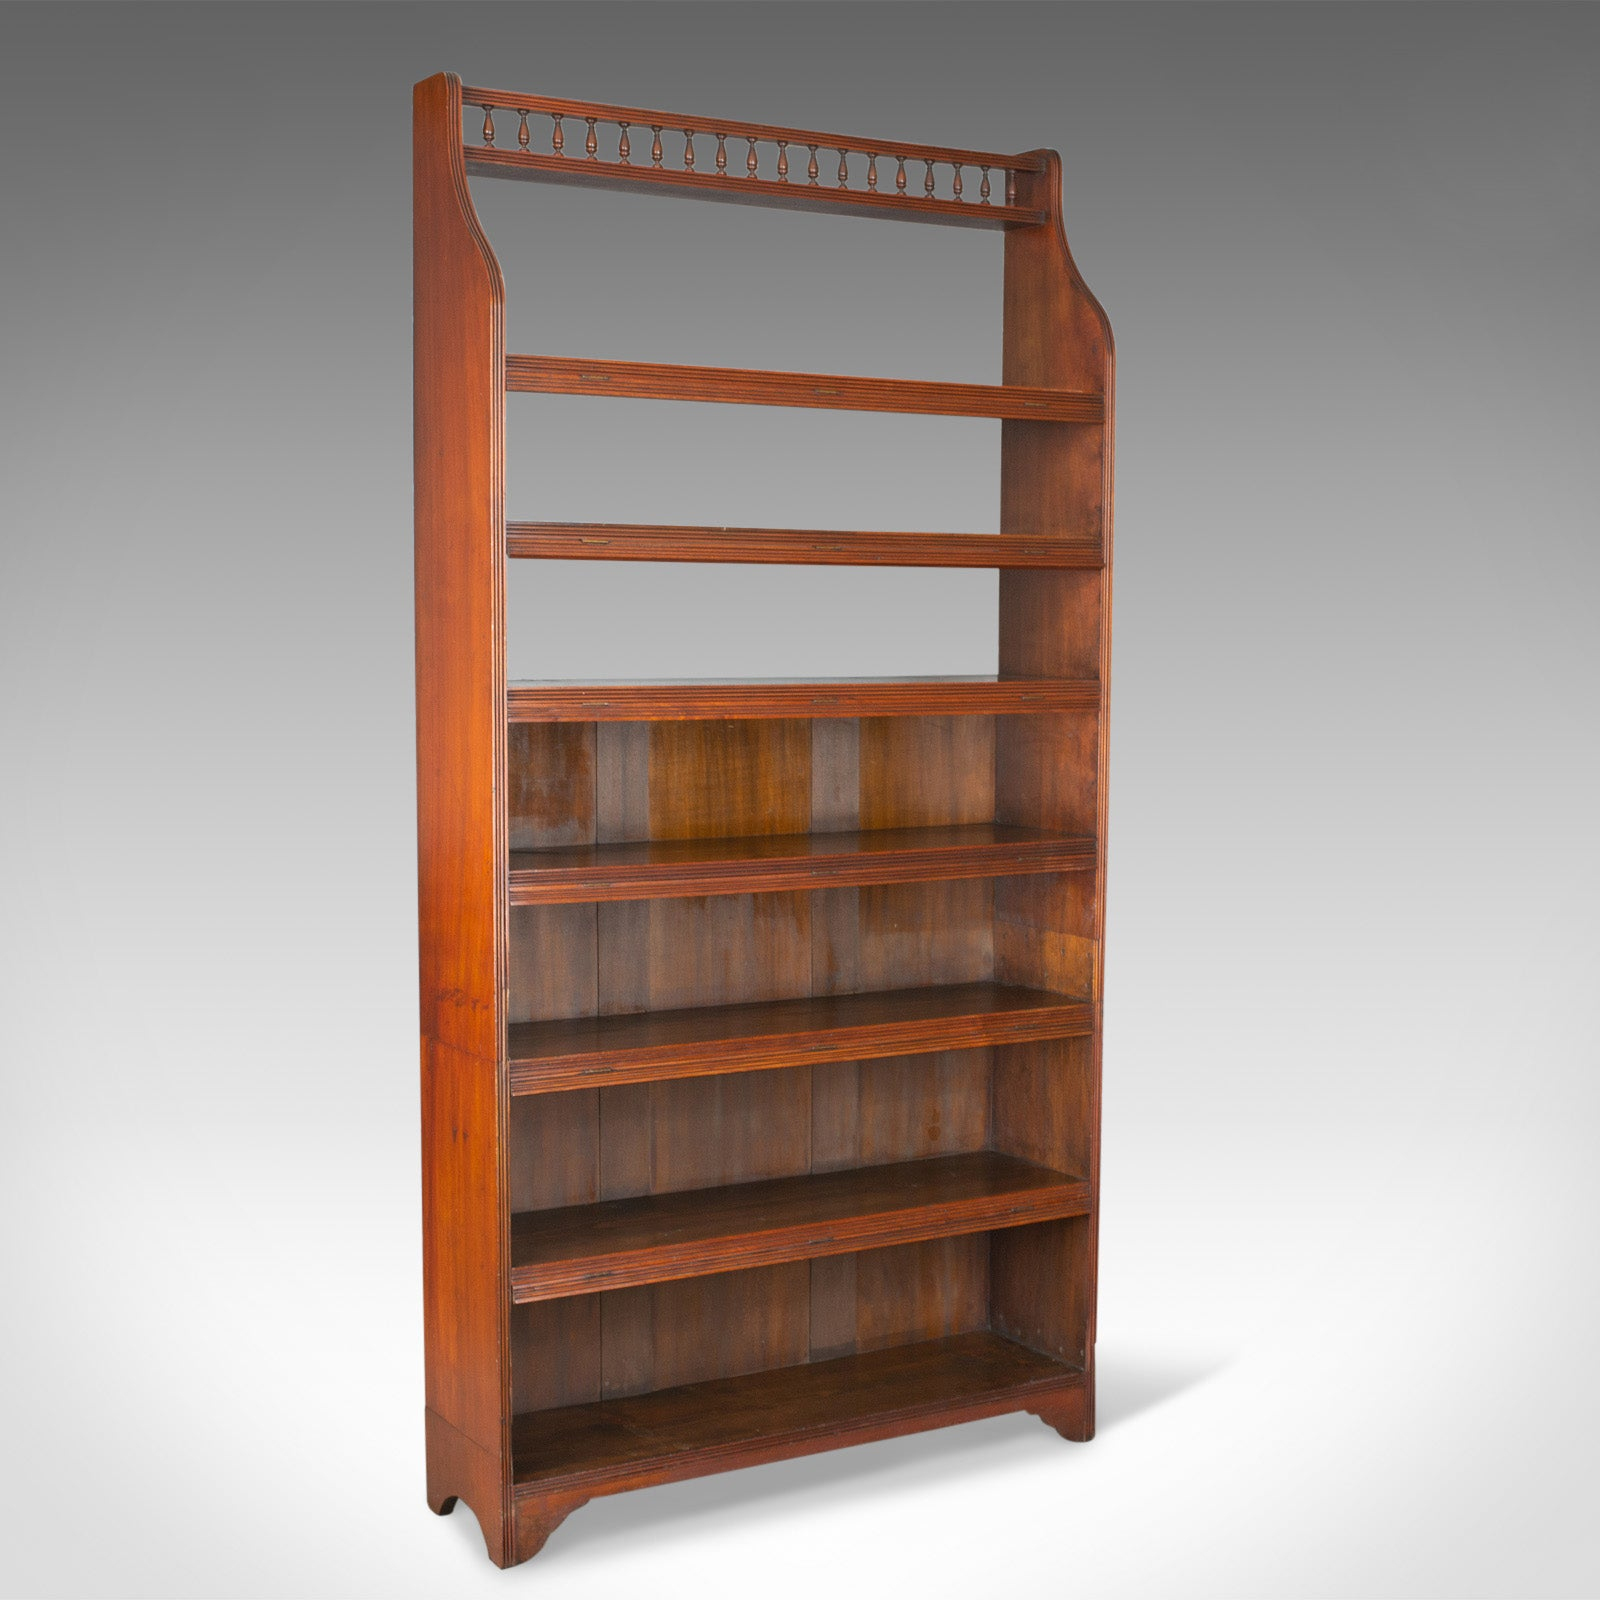 Details About Antique Open Bookcase, Tall, English, Walnut, Book Shelves,  Edwardian Circa 1910